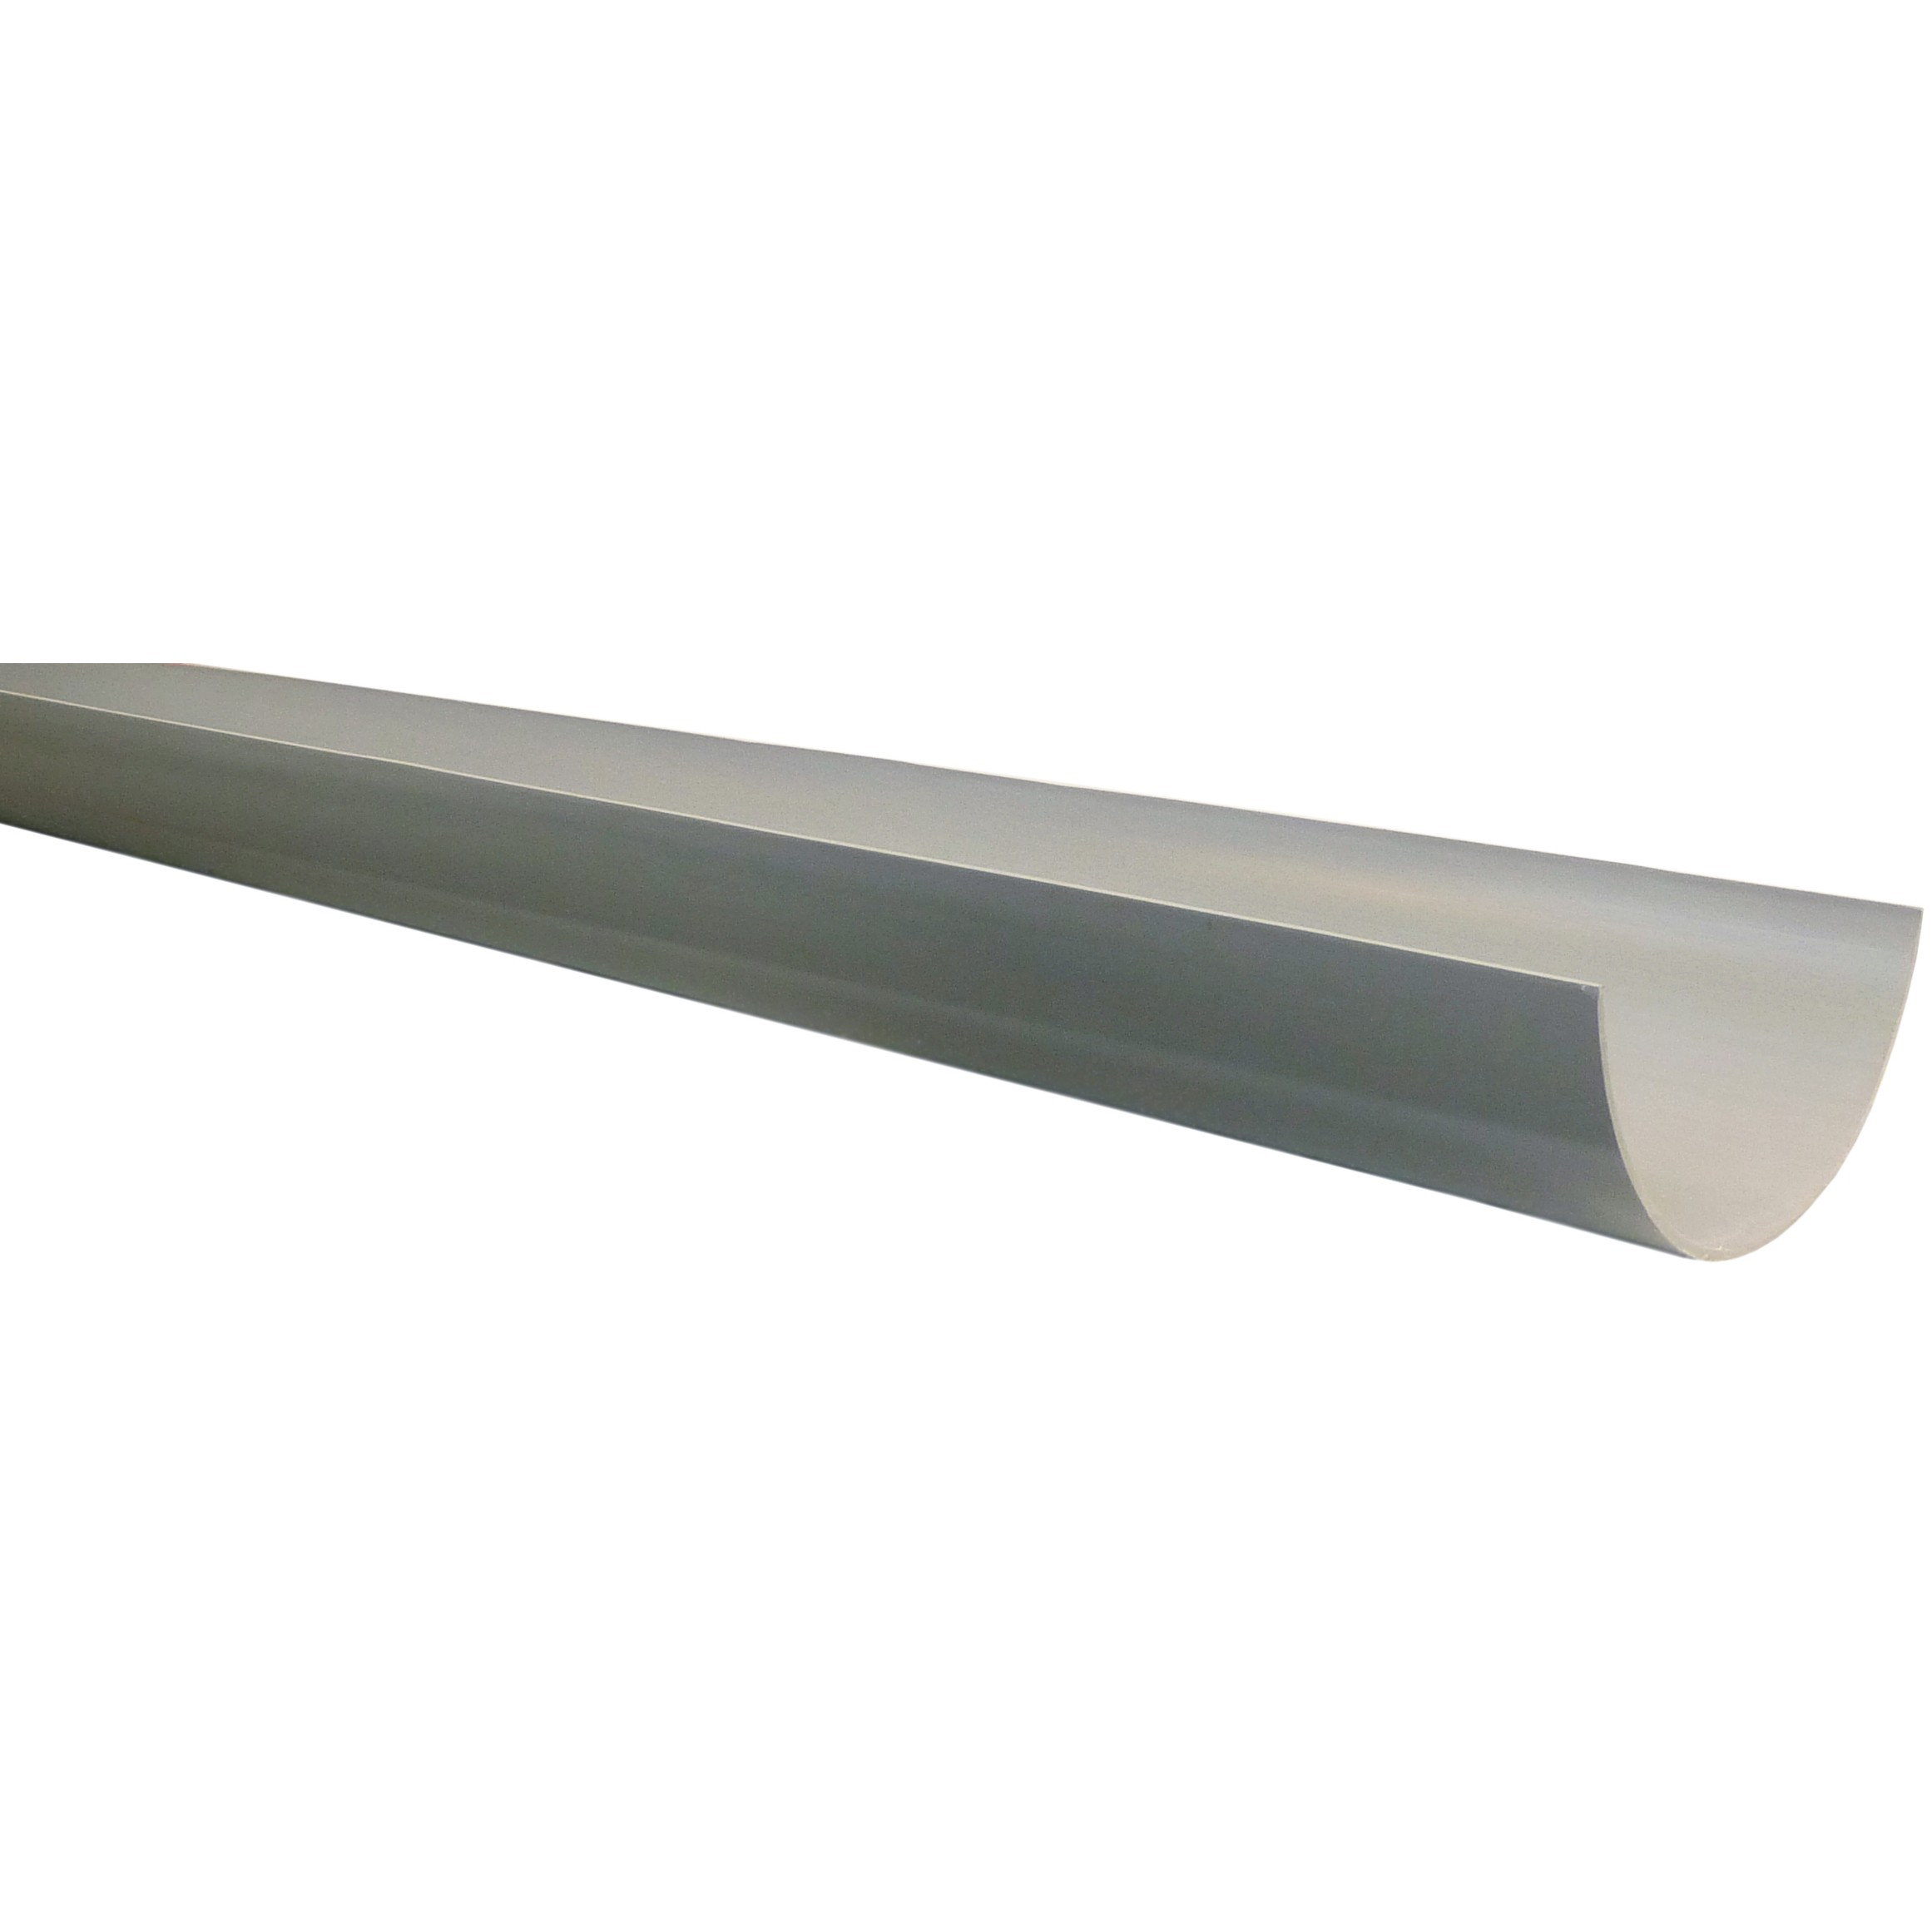 Polypipe 150mm Large Half Round Gutter - Grey, 2 metre